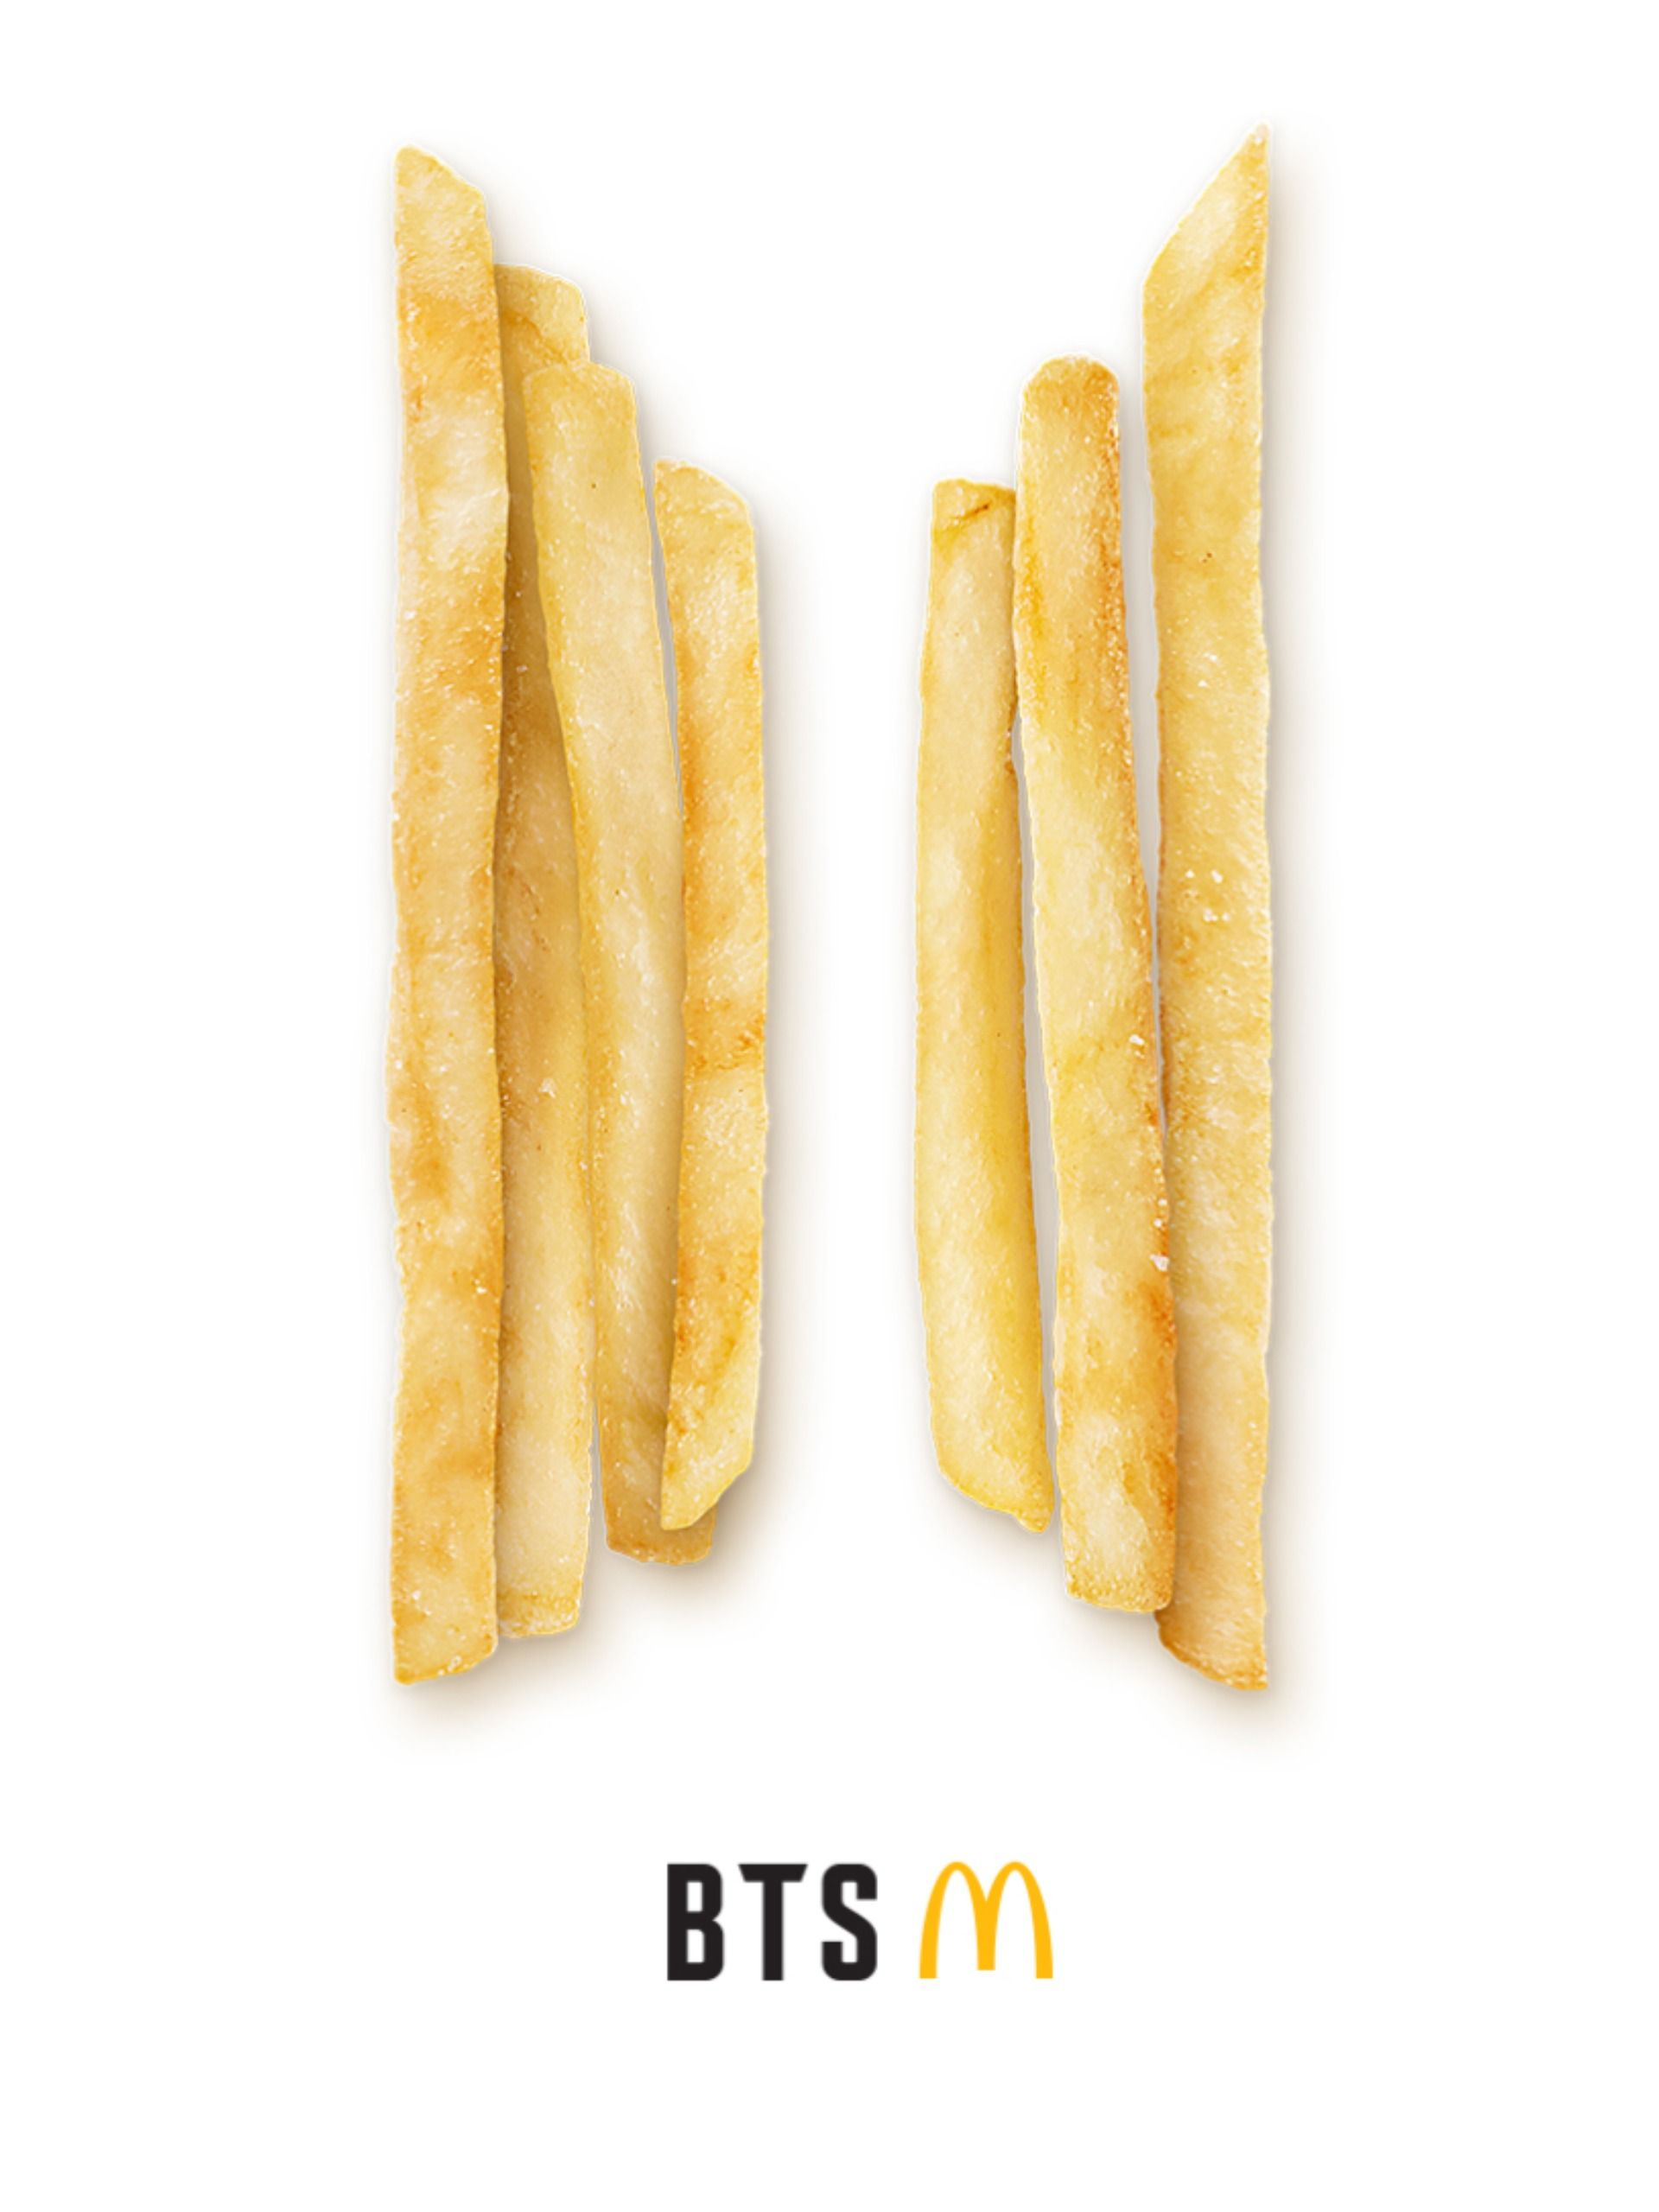 Mcdonald S Partners With Bts To Launch Bts Meal Around The World In 2021 Bts Bts Bulletproof Bts Boys Bts mcdonald's meal wallpaper